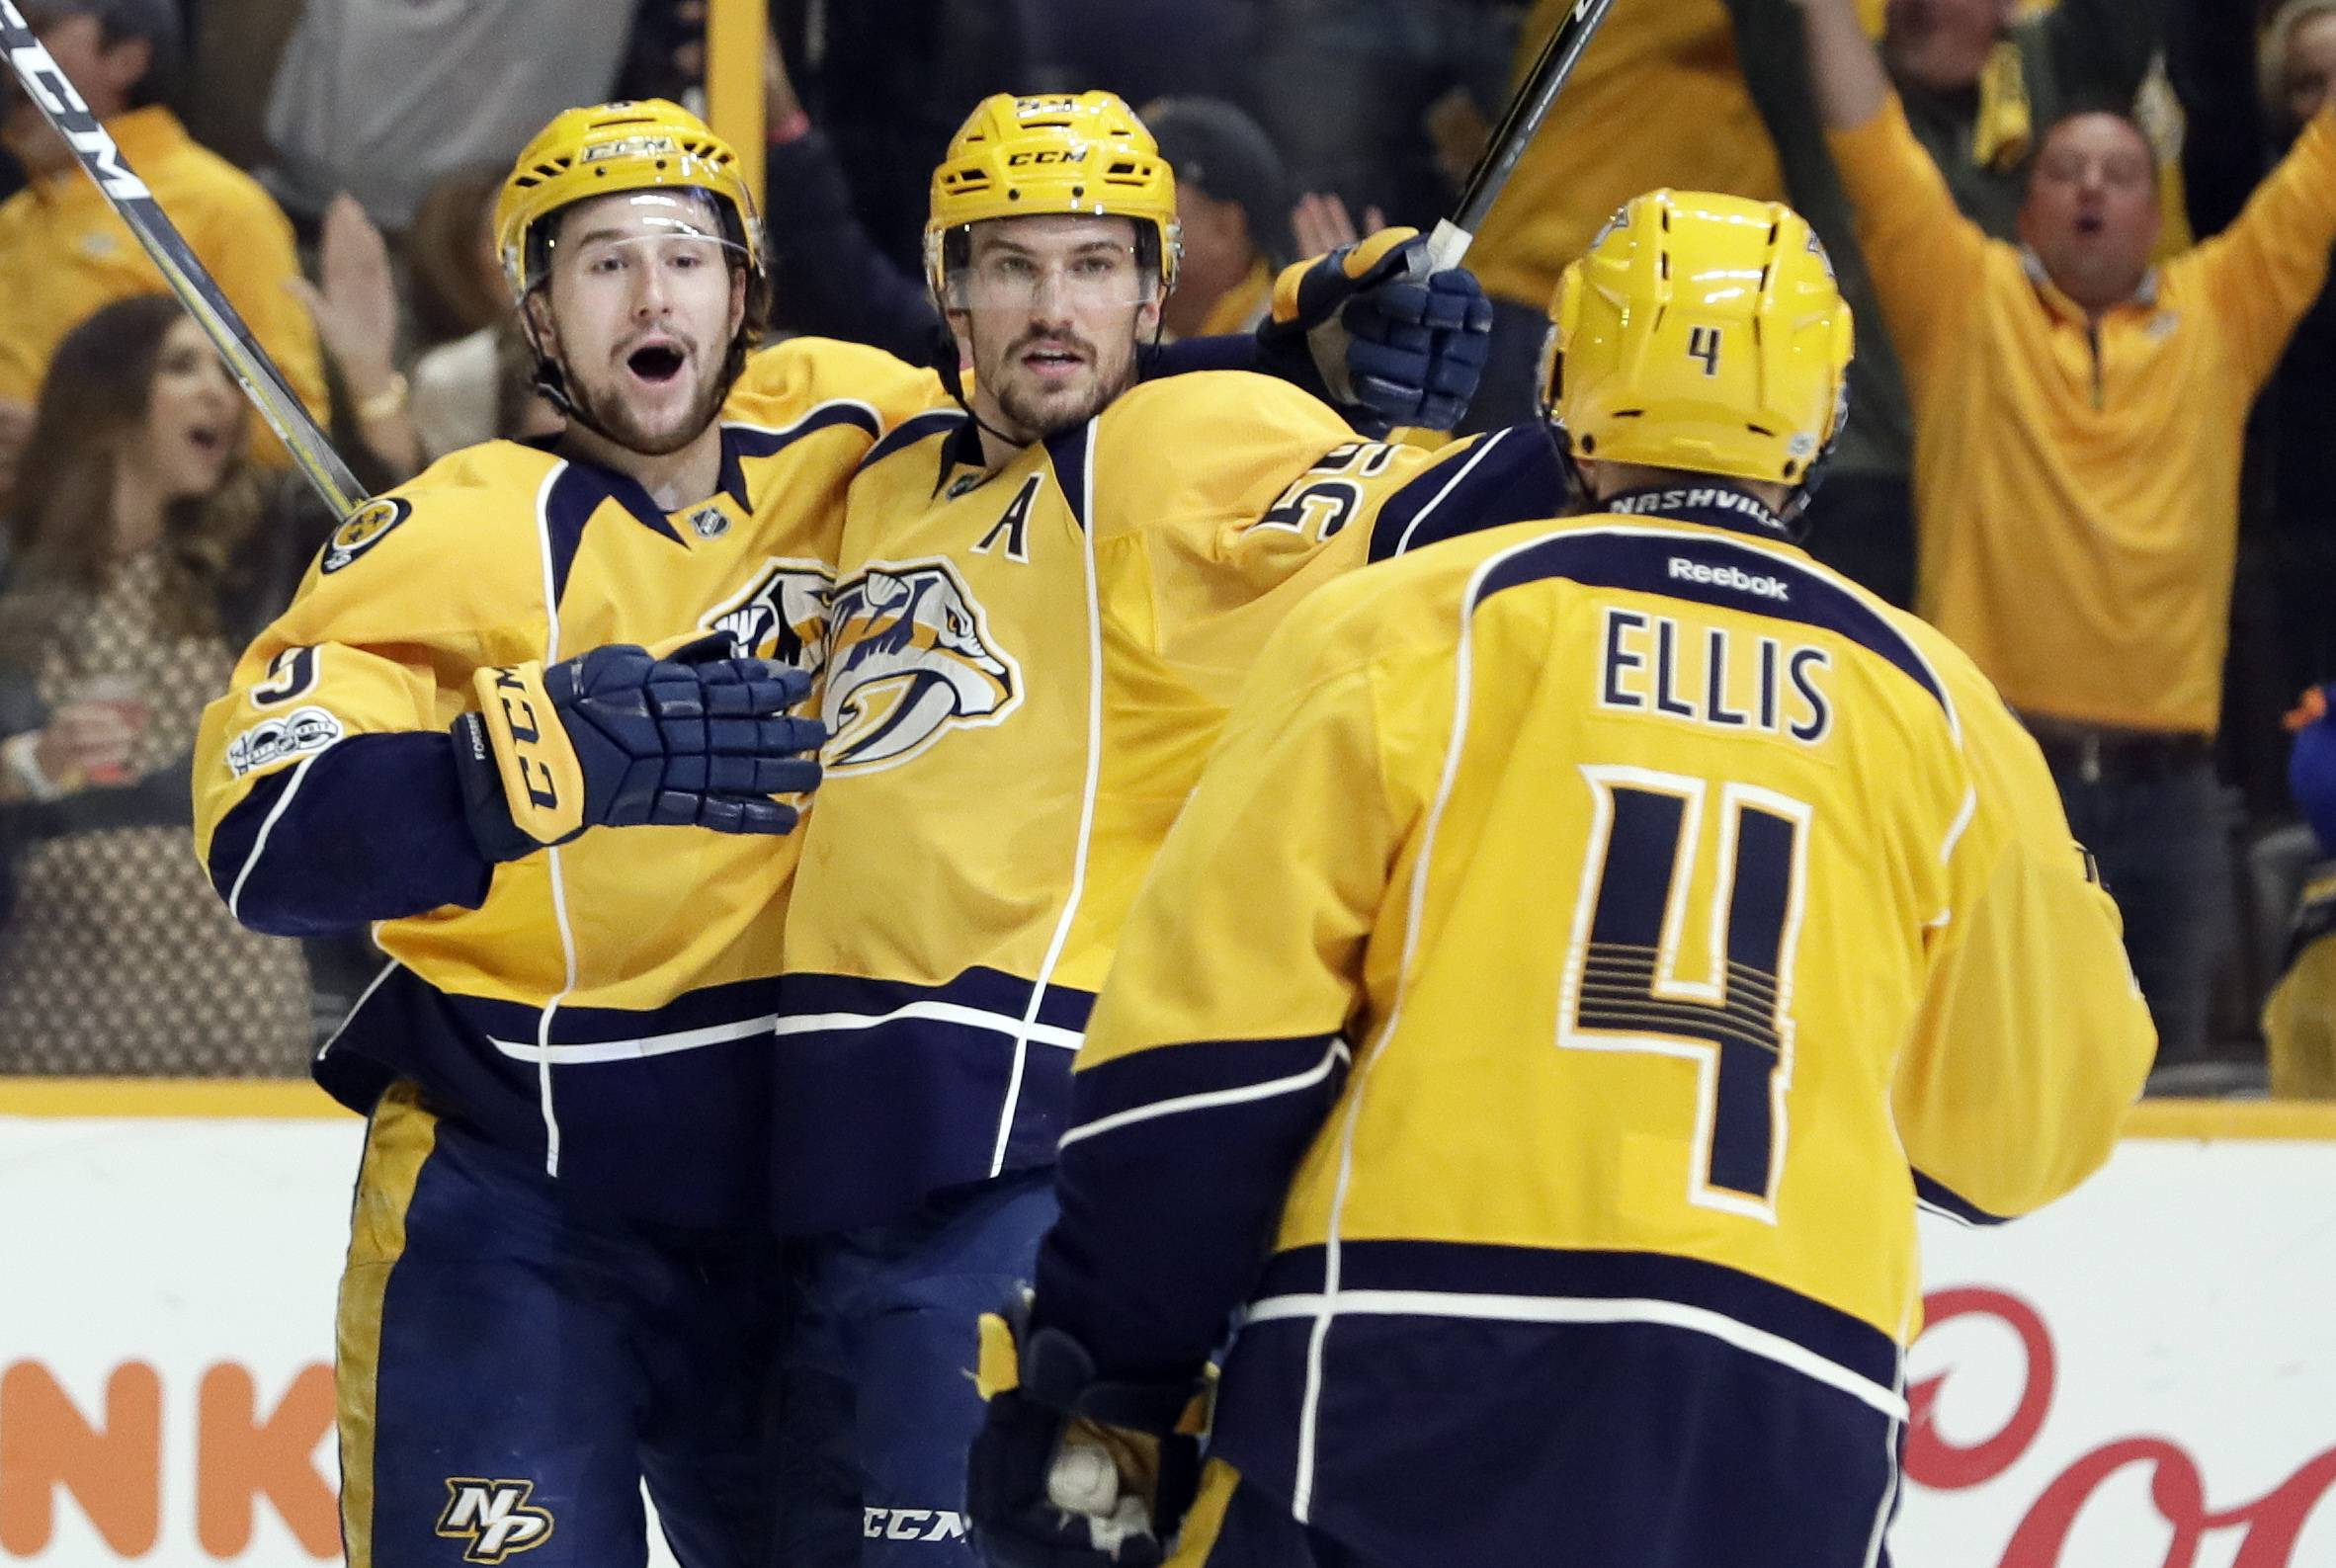 Nashville Predators defenseman Roman Josi (59), of Switzerland, celebrates with Filip Forsberg (9), of Sweden, and Ryan Ellis (4) after Josi scored against the Chicago Blackhawks during the second period in Game 4 of a first-round NHL hockey playoff series Thursday, April 20, 2017, in Nashville, Tenn.